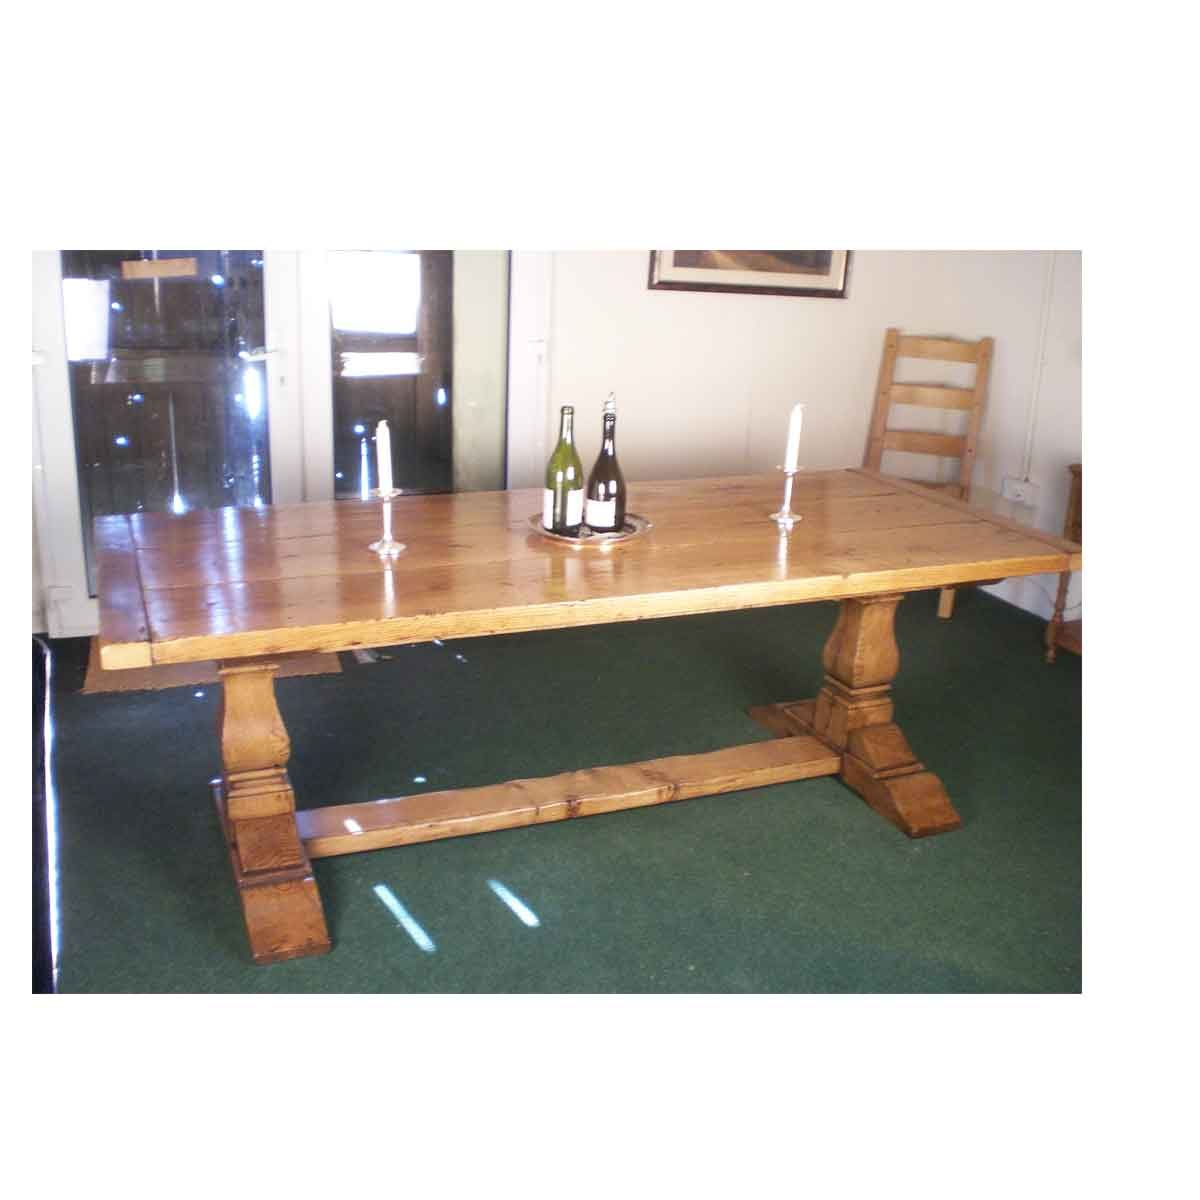 A Square cut refectory table.